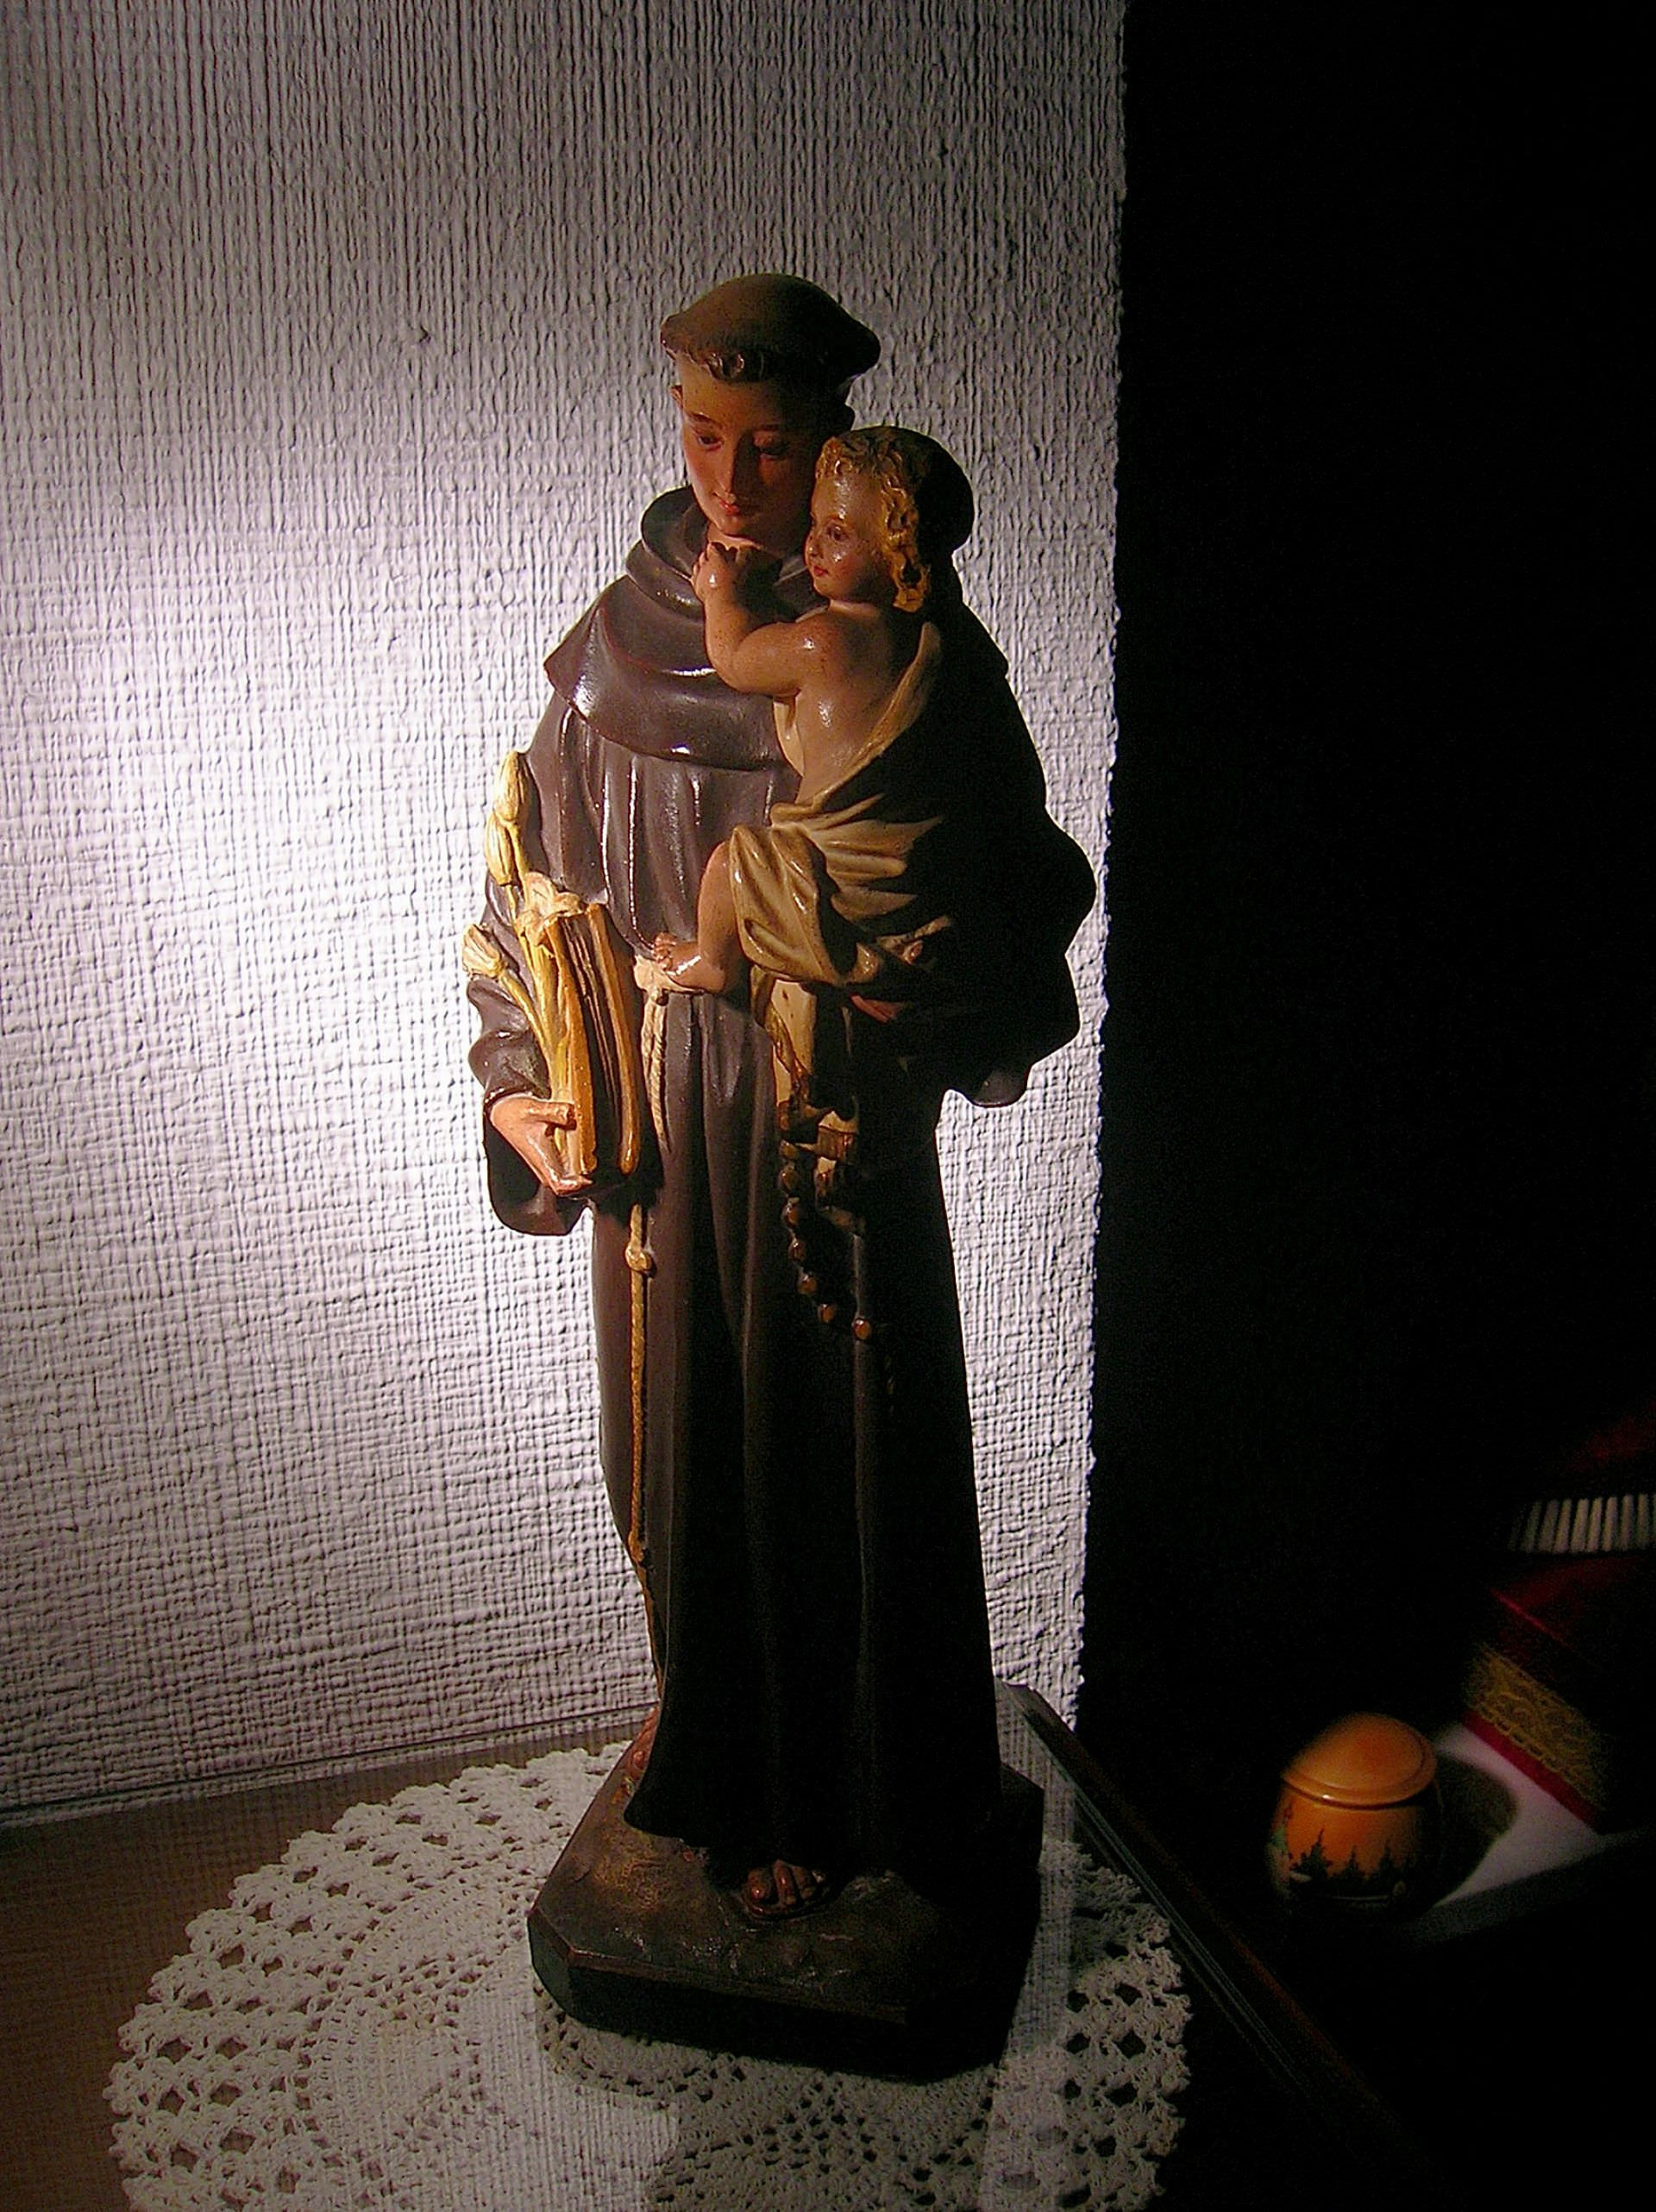 saint anthony of padua, holy, holiness, child jesus, san antonio de lisboa, franciscan